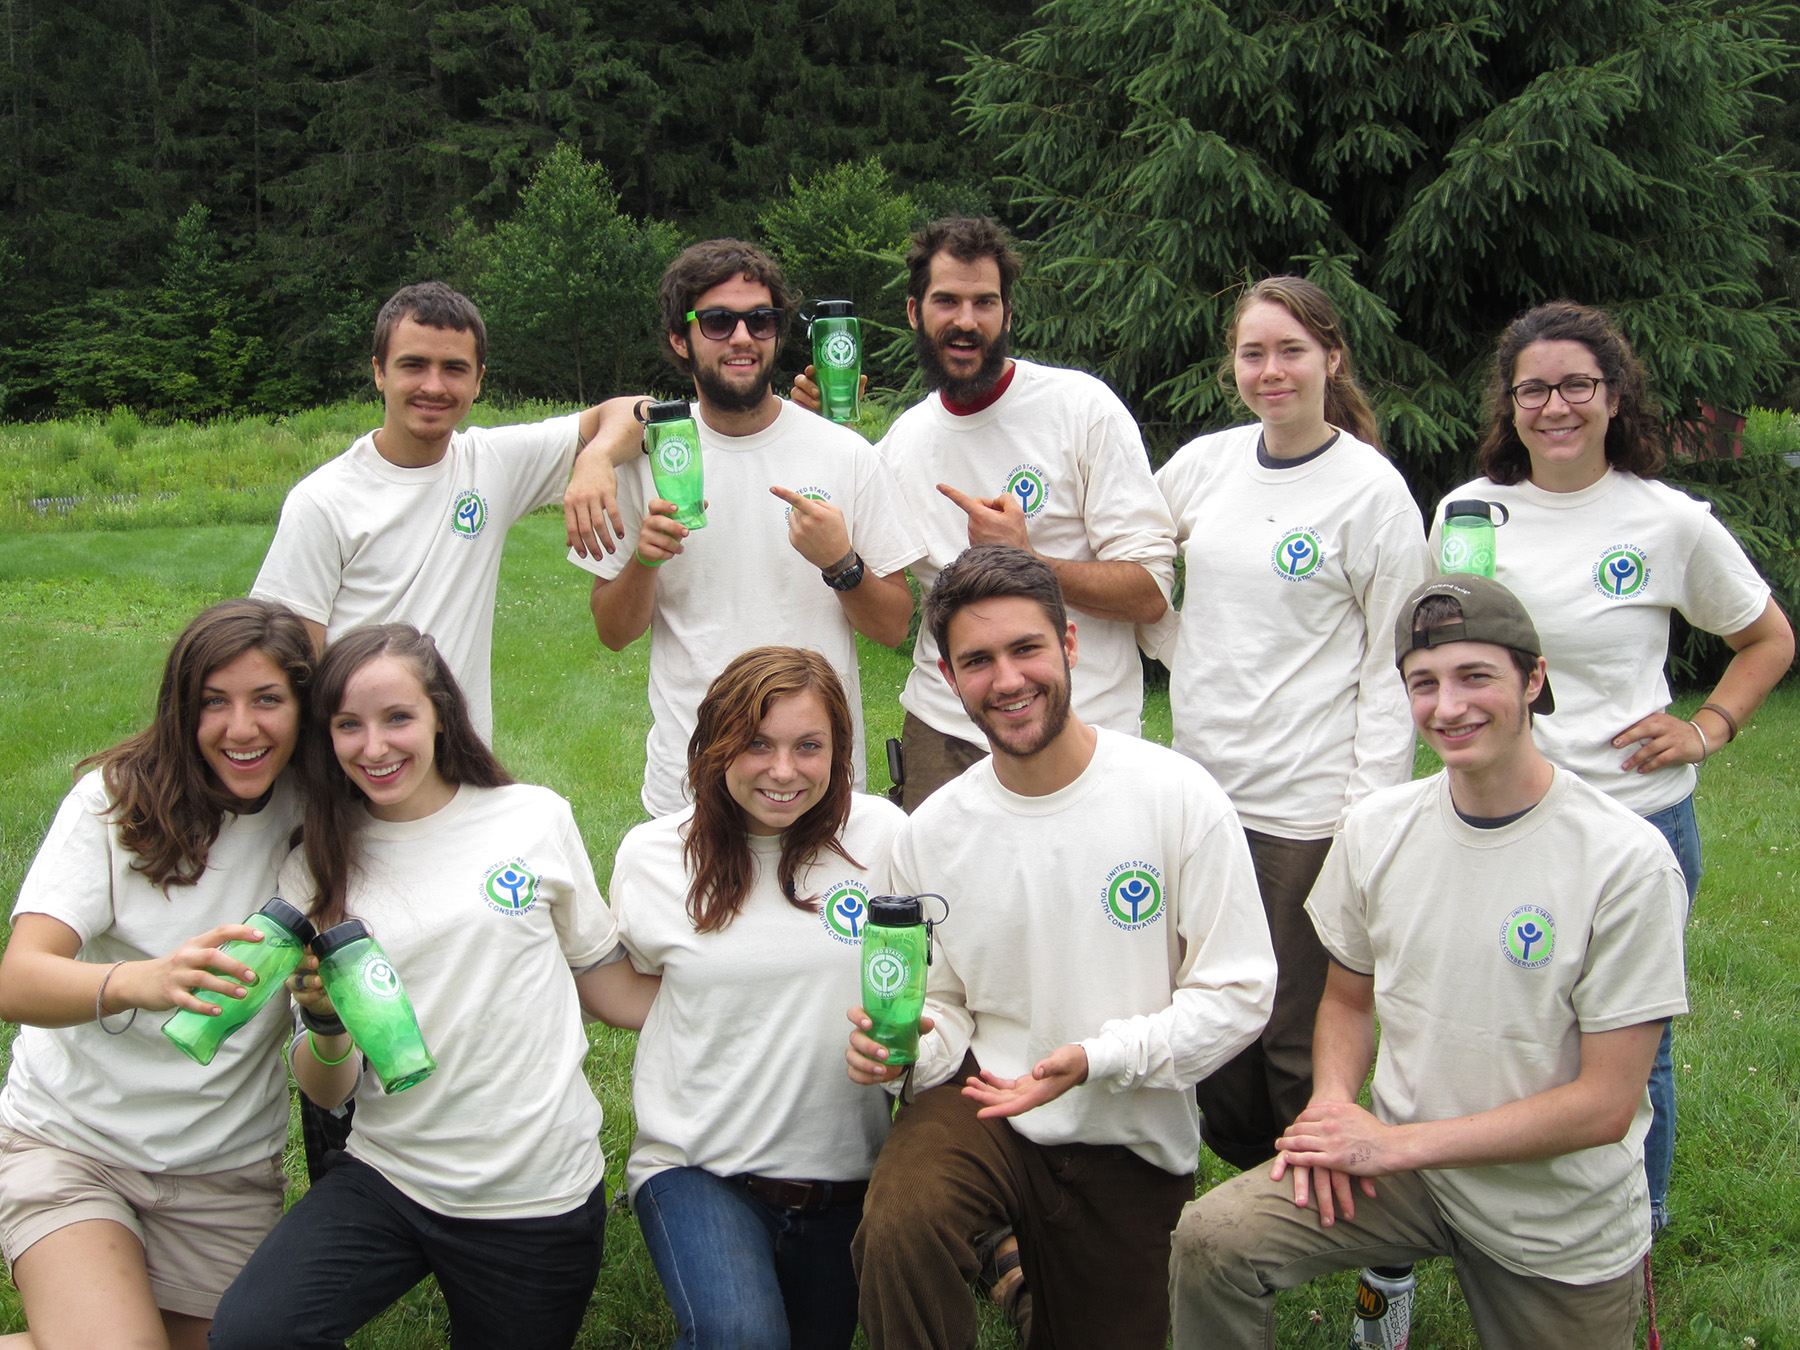 A photo of 10 youths from the Vermont Youth Conservation Corps.